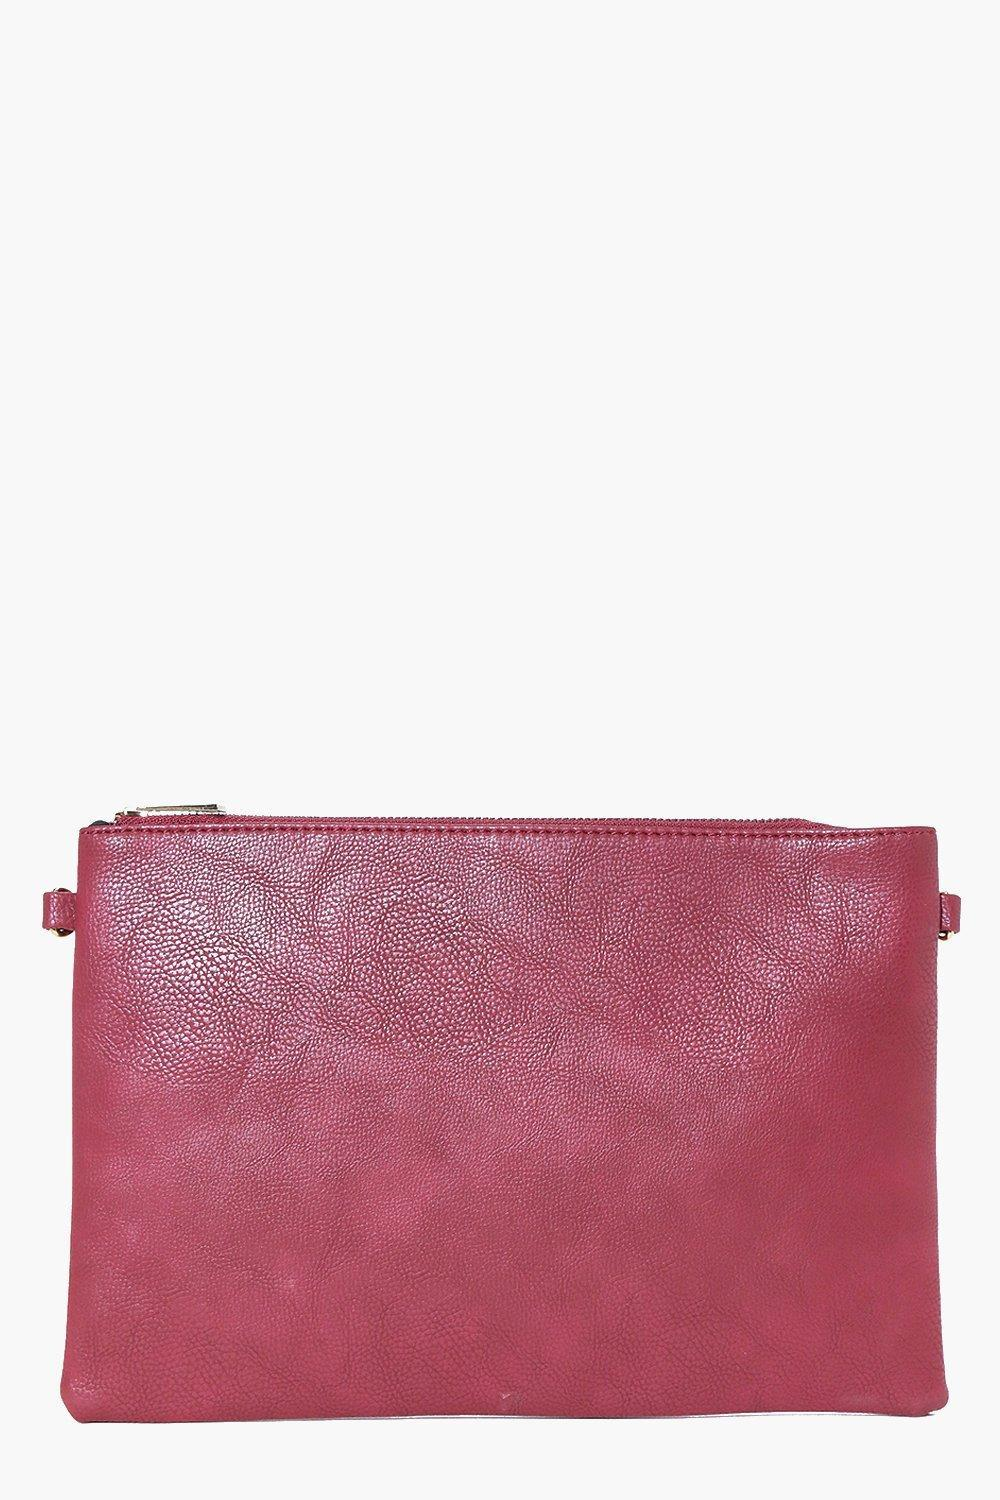 Zip Top Clutch Bag Berry - predominant colour: hot pink; occasions: evening, occasion; type of pattern: standard; style: clutch; length: across body/long; size: standard; material: faux leather; pattern: plain; finish: plain; season: a/w 2016; wardrobe: event